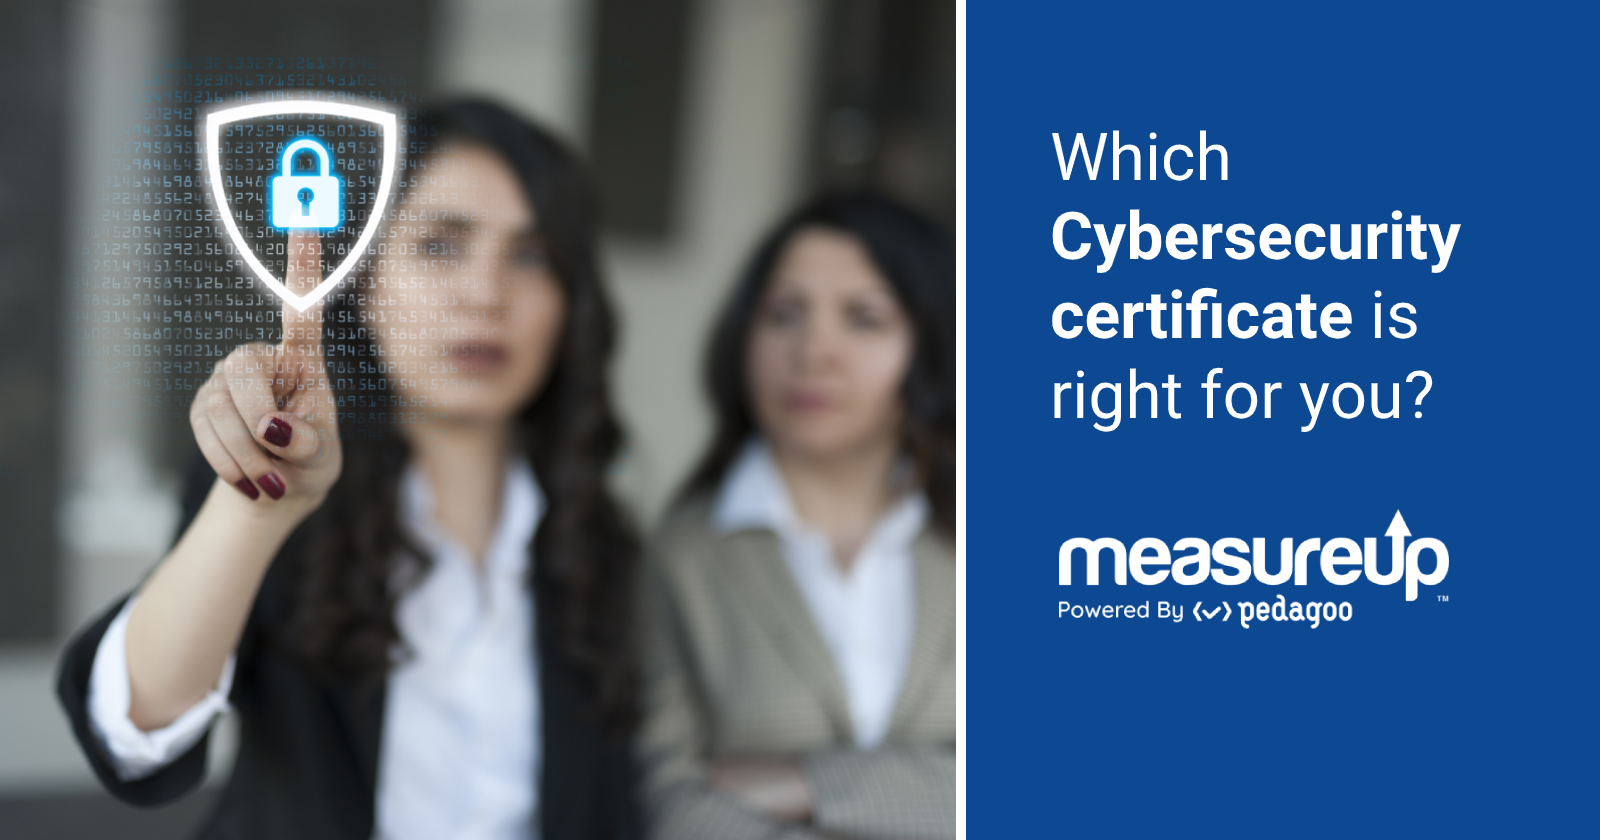 Which Cybersecurity certificate is right for you?